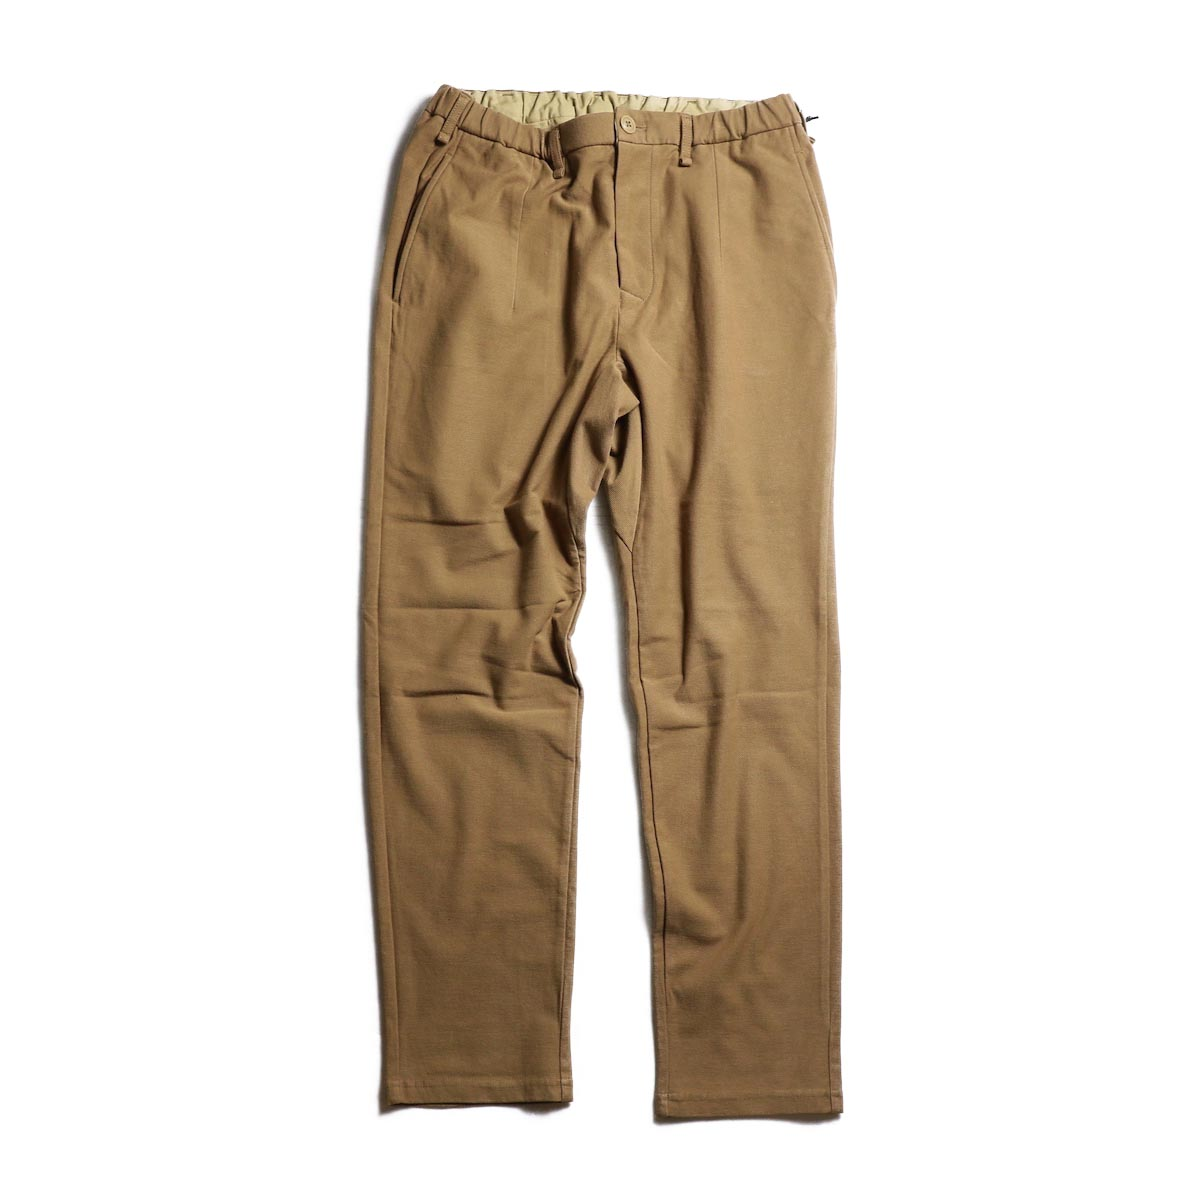 CURLY / CLIFTON EZ TROUSERS (Beige)